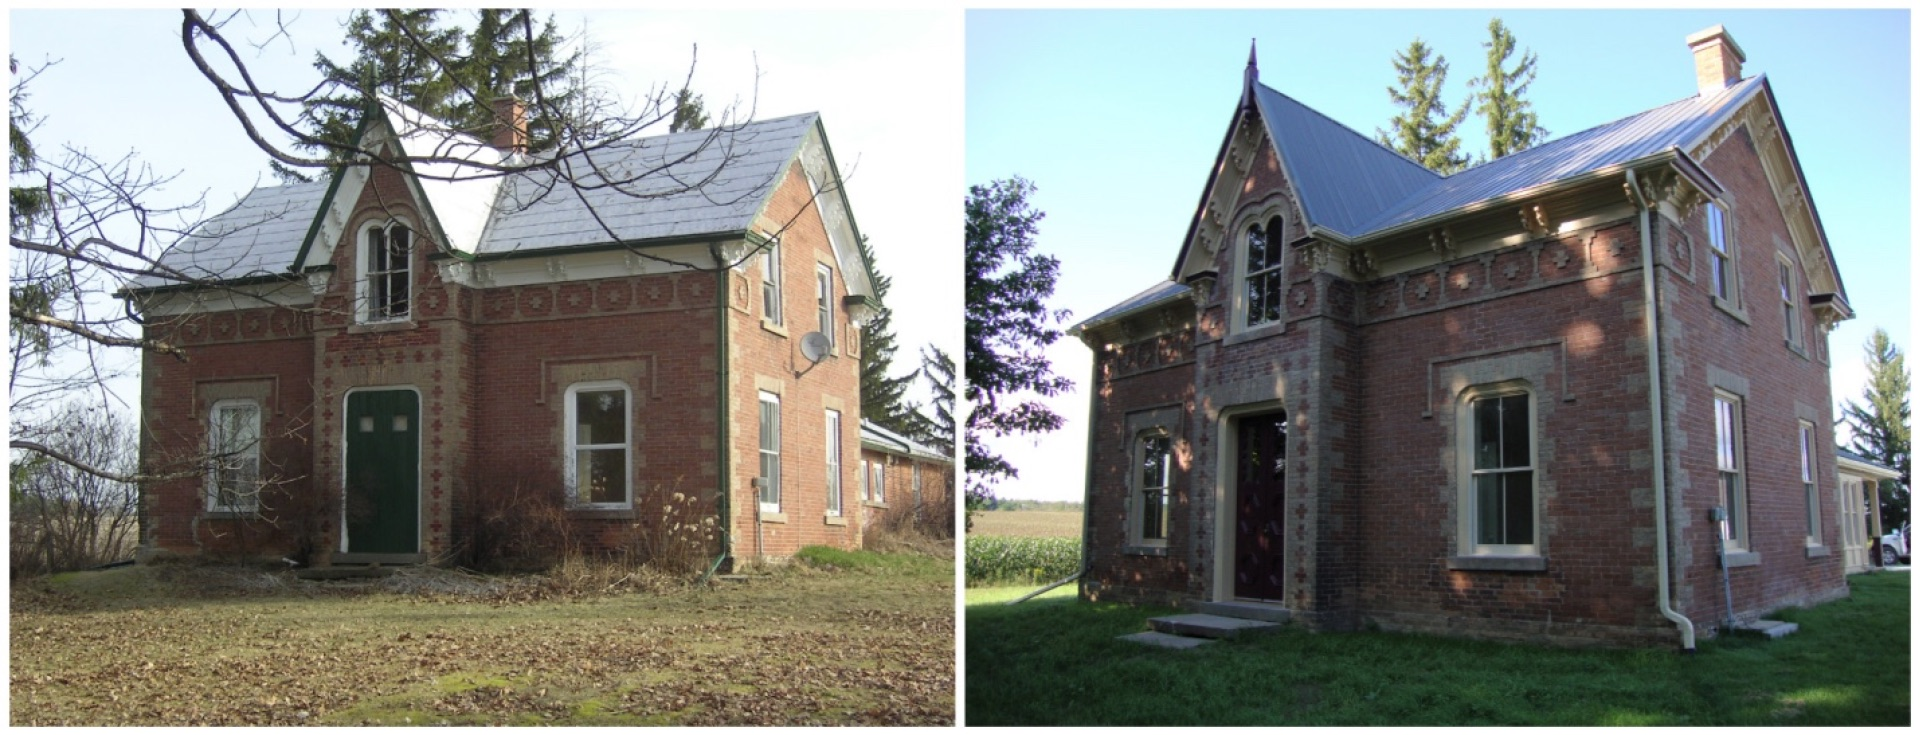 Before and after red brick farmhouse renovation.jpg